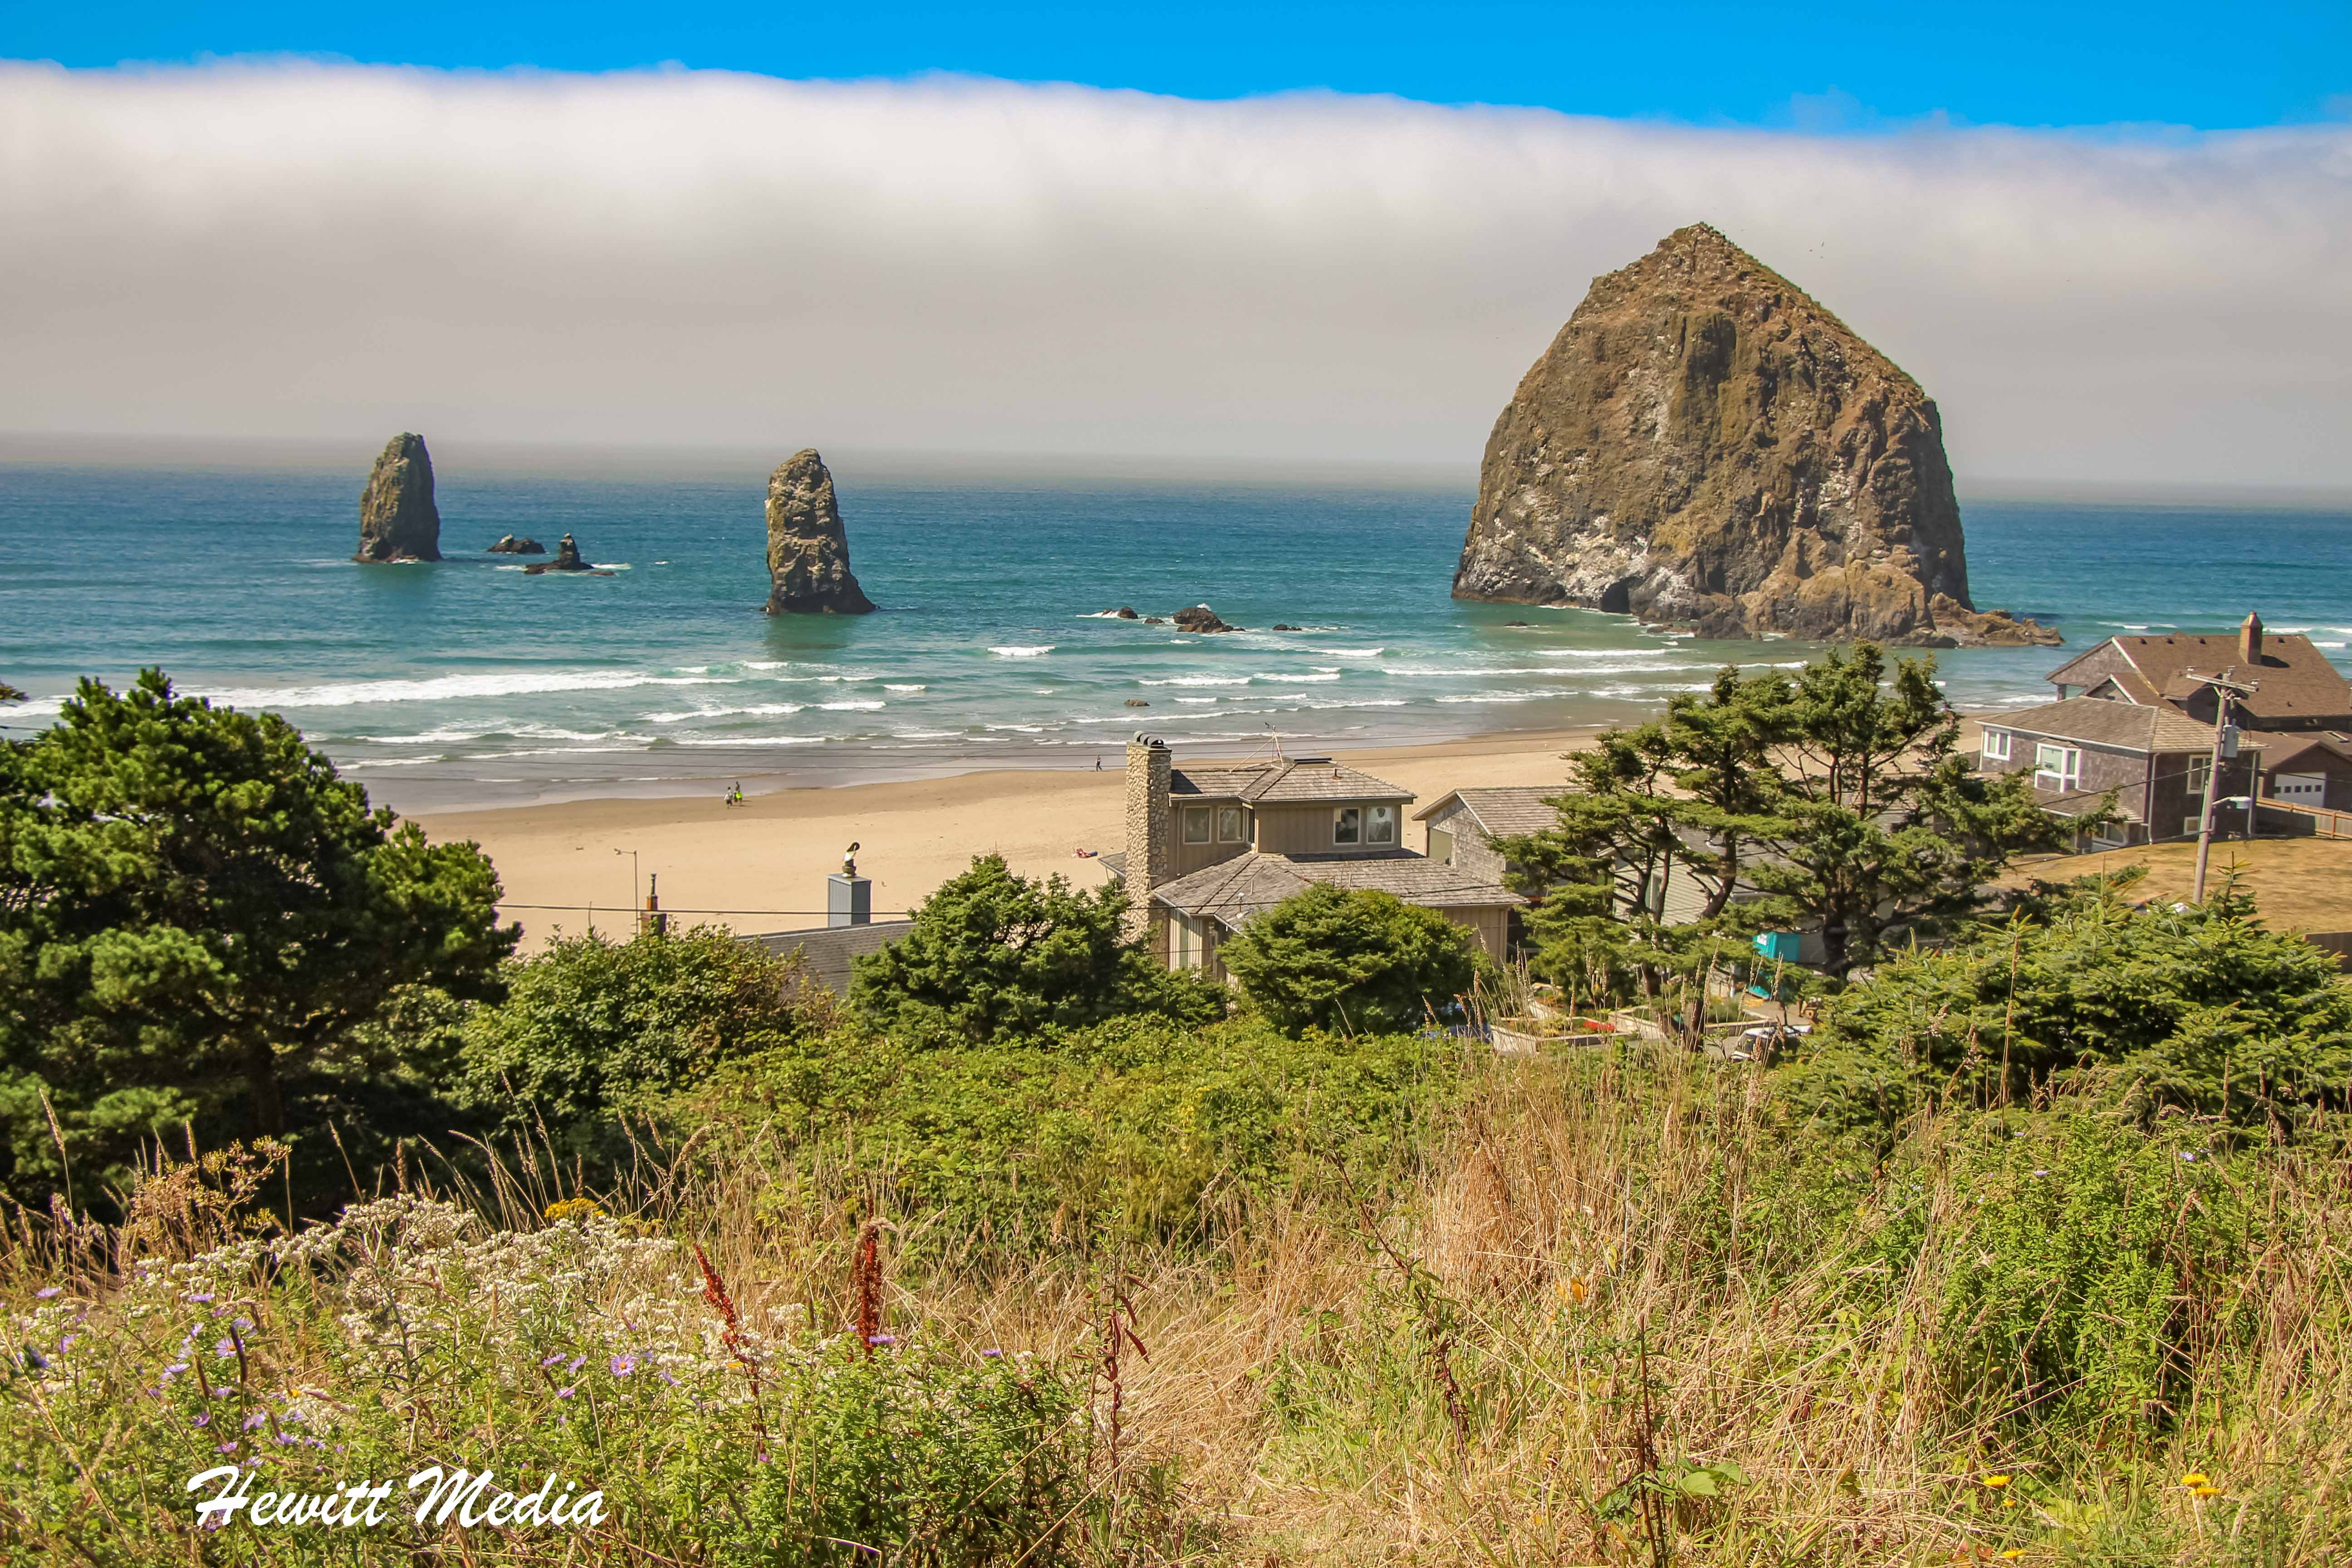 The Haystack Rock off Canon Beach's coast